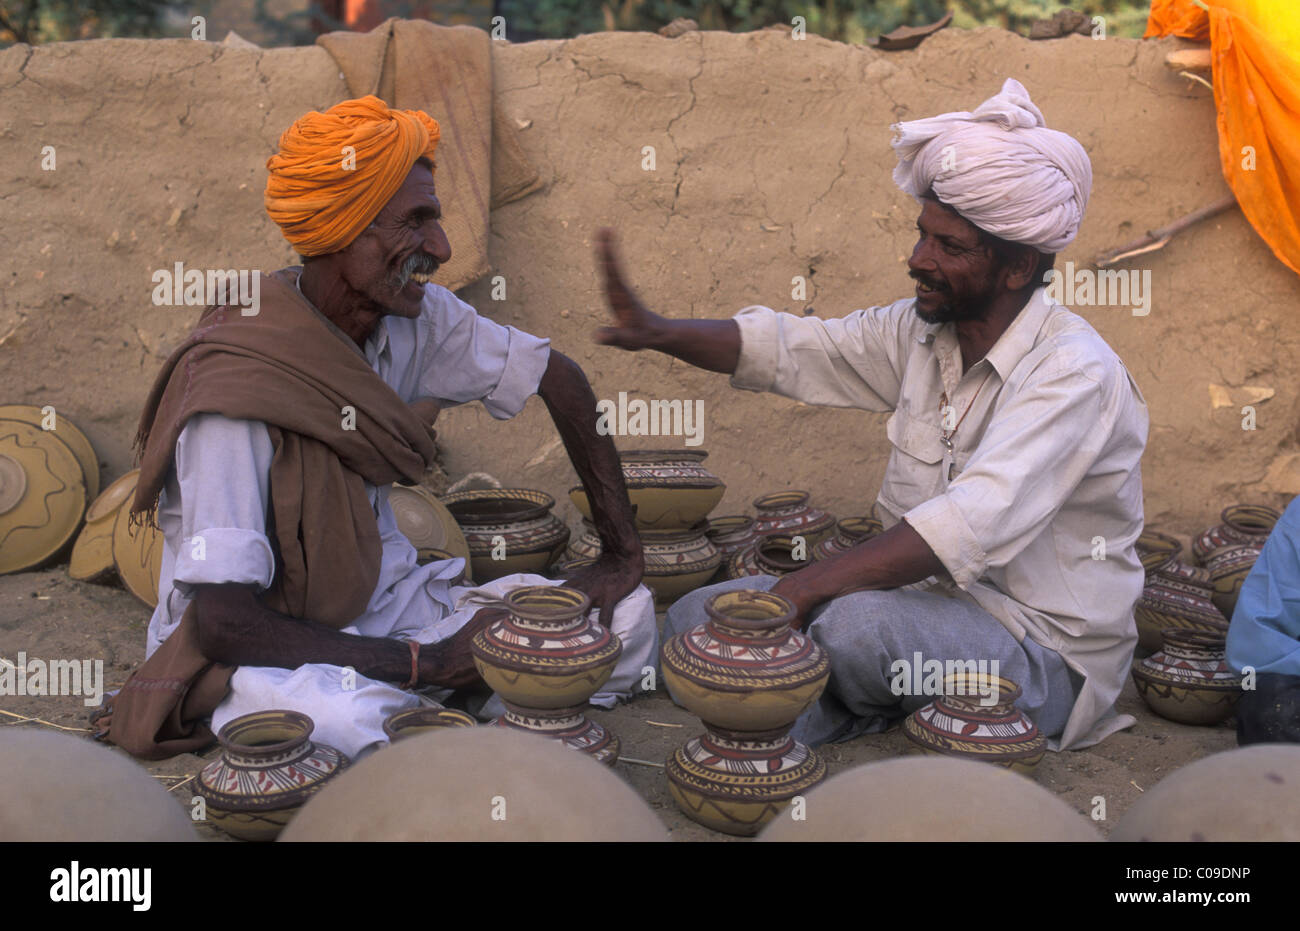 Potters in conversation, Thar Desert, Rajasthan, India, Asia - Stock Image